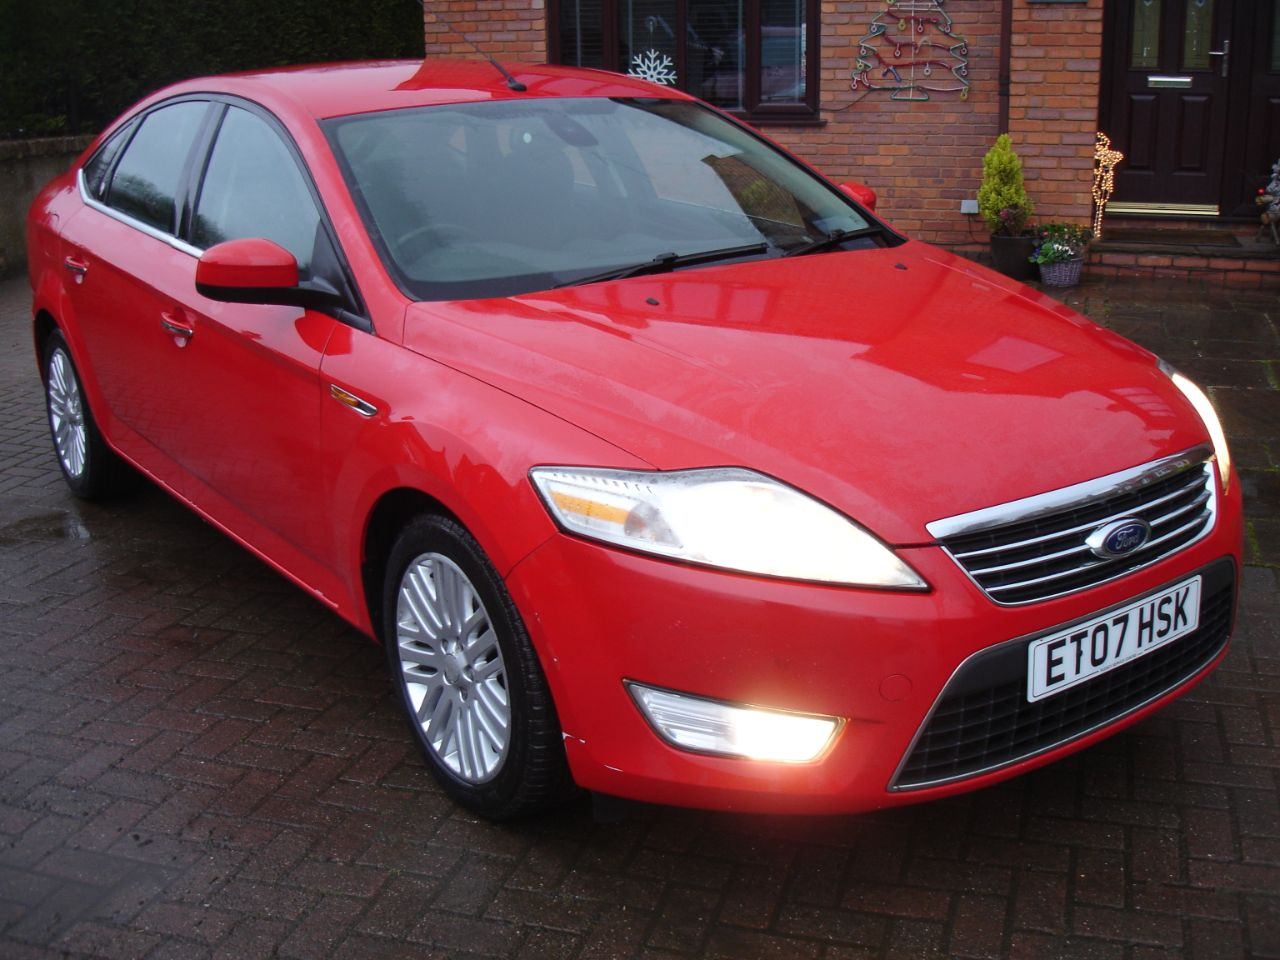 Ford Mondeo 2.0 Tdci Ghia 140ps 6 Speed 5dr